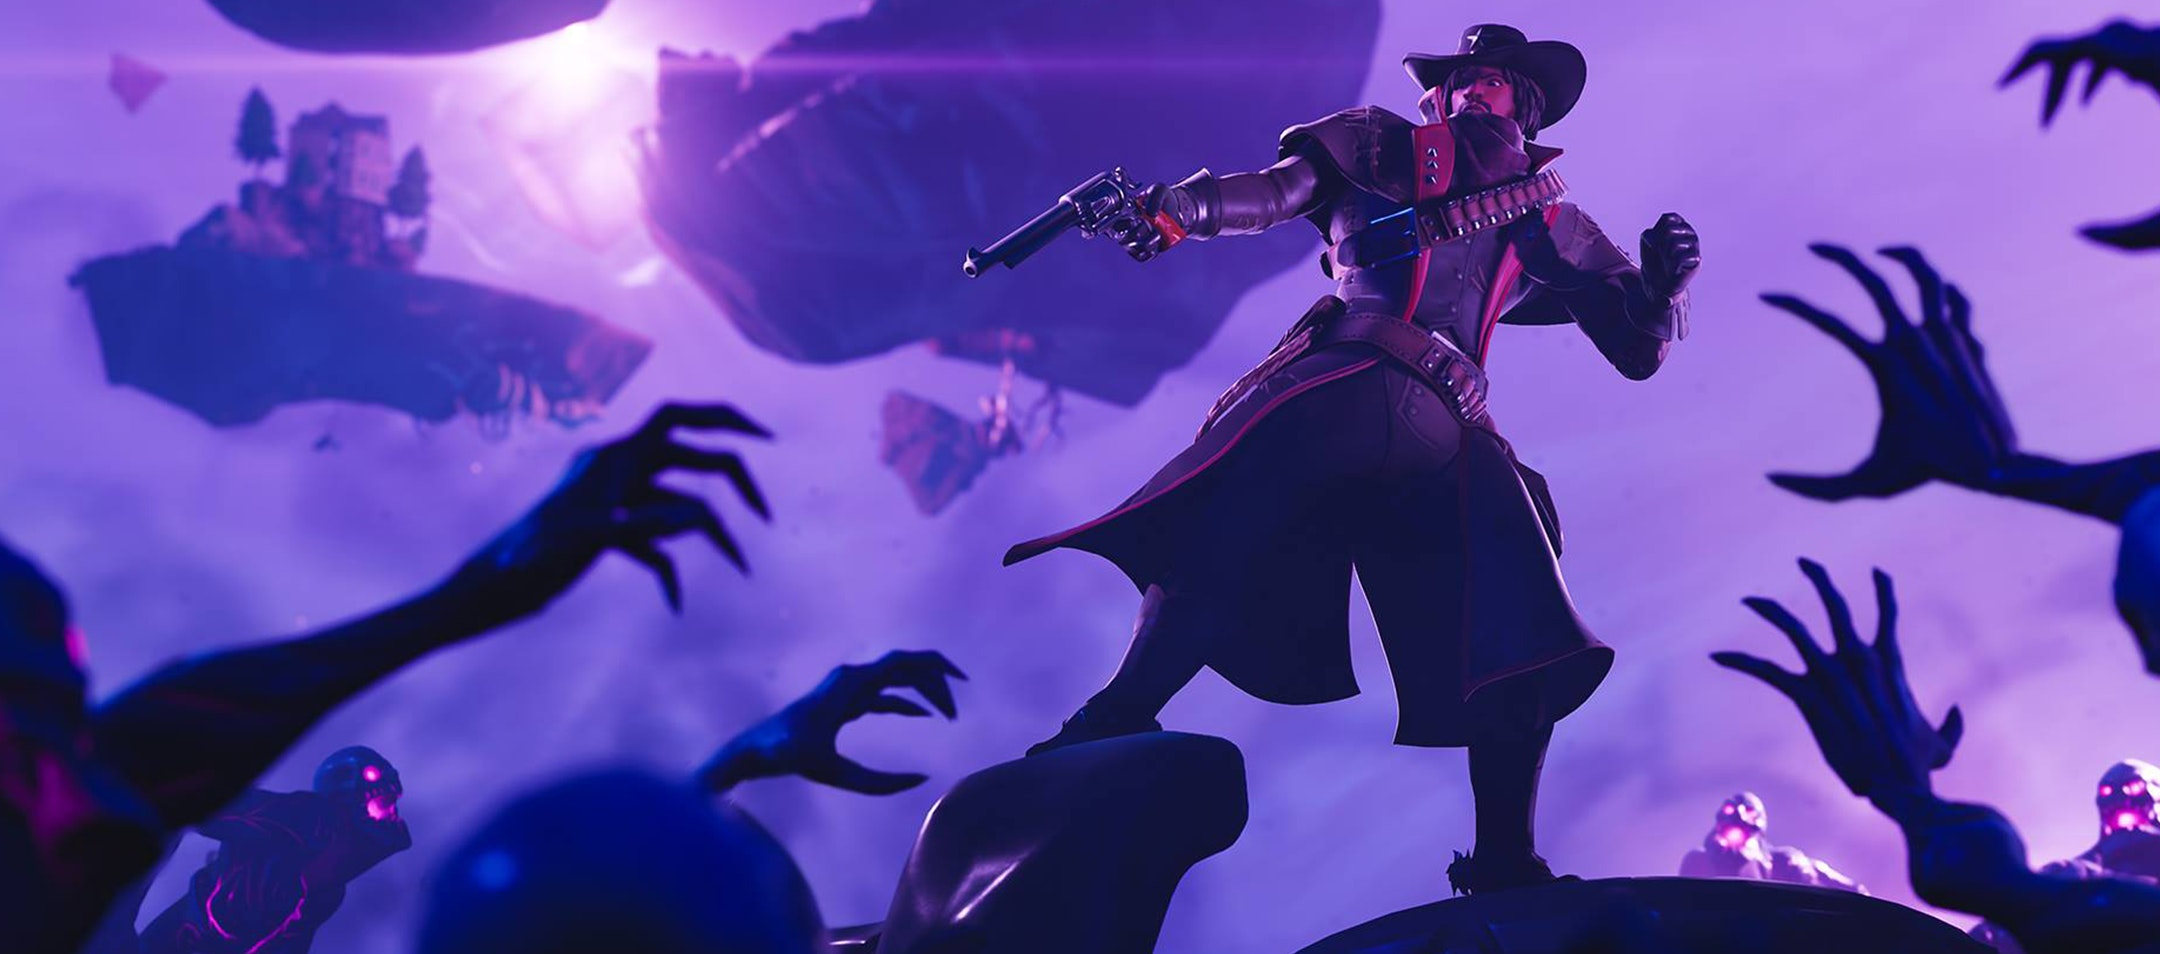 fortnitemares fortnite desktop hero